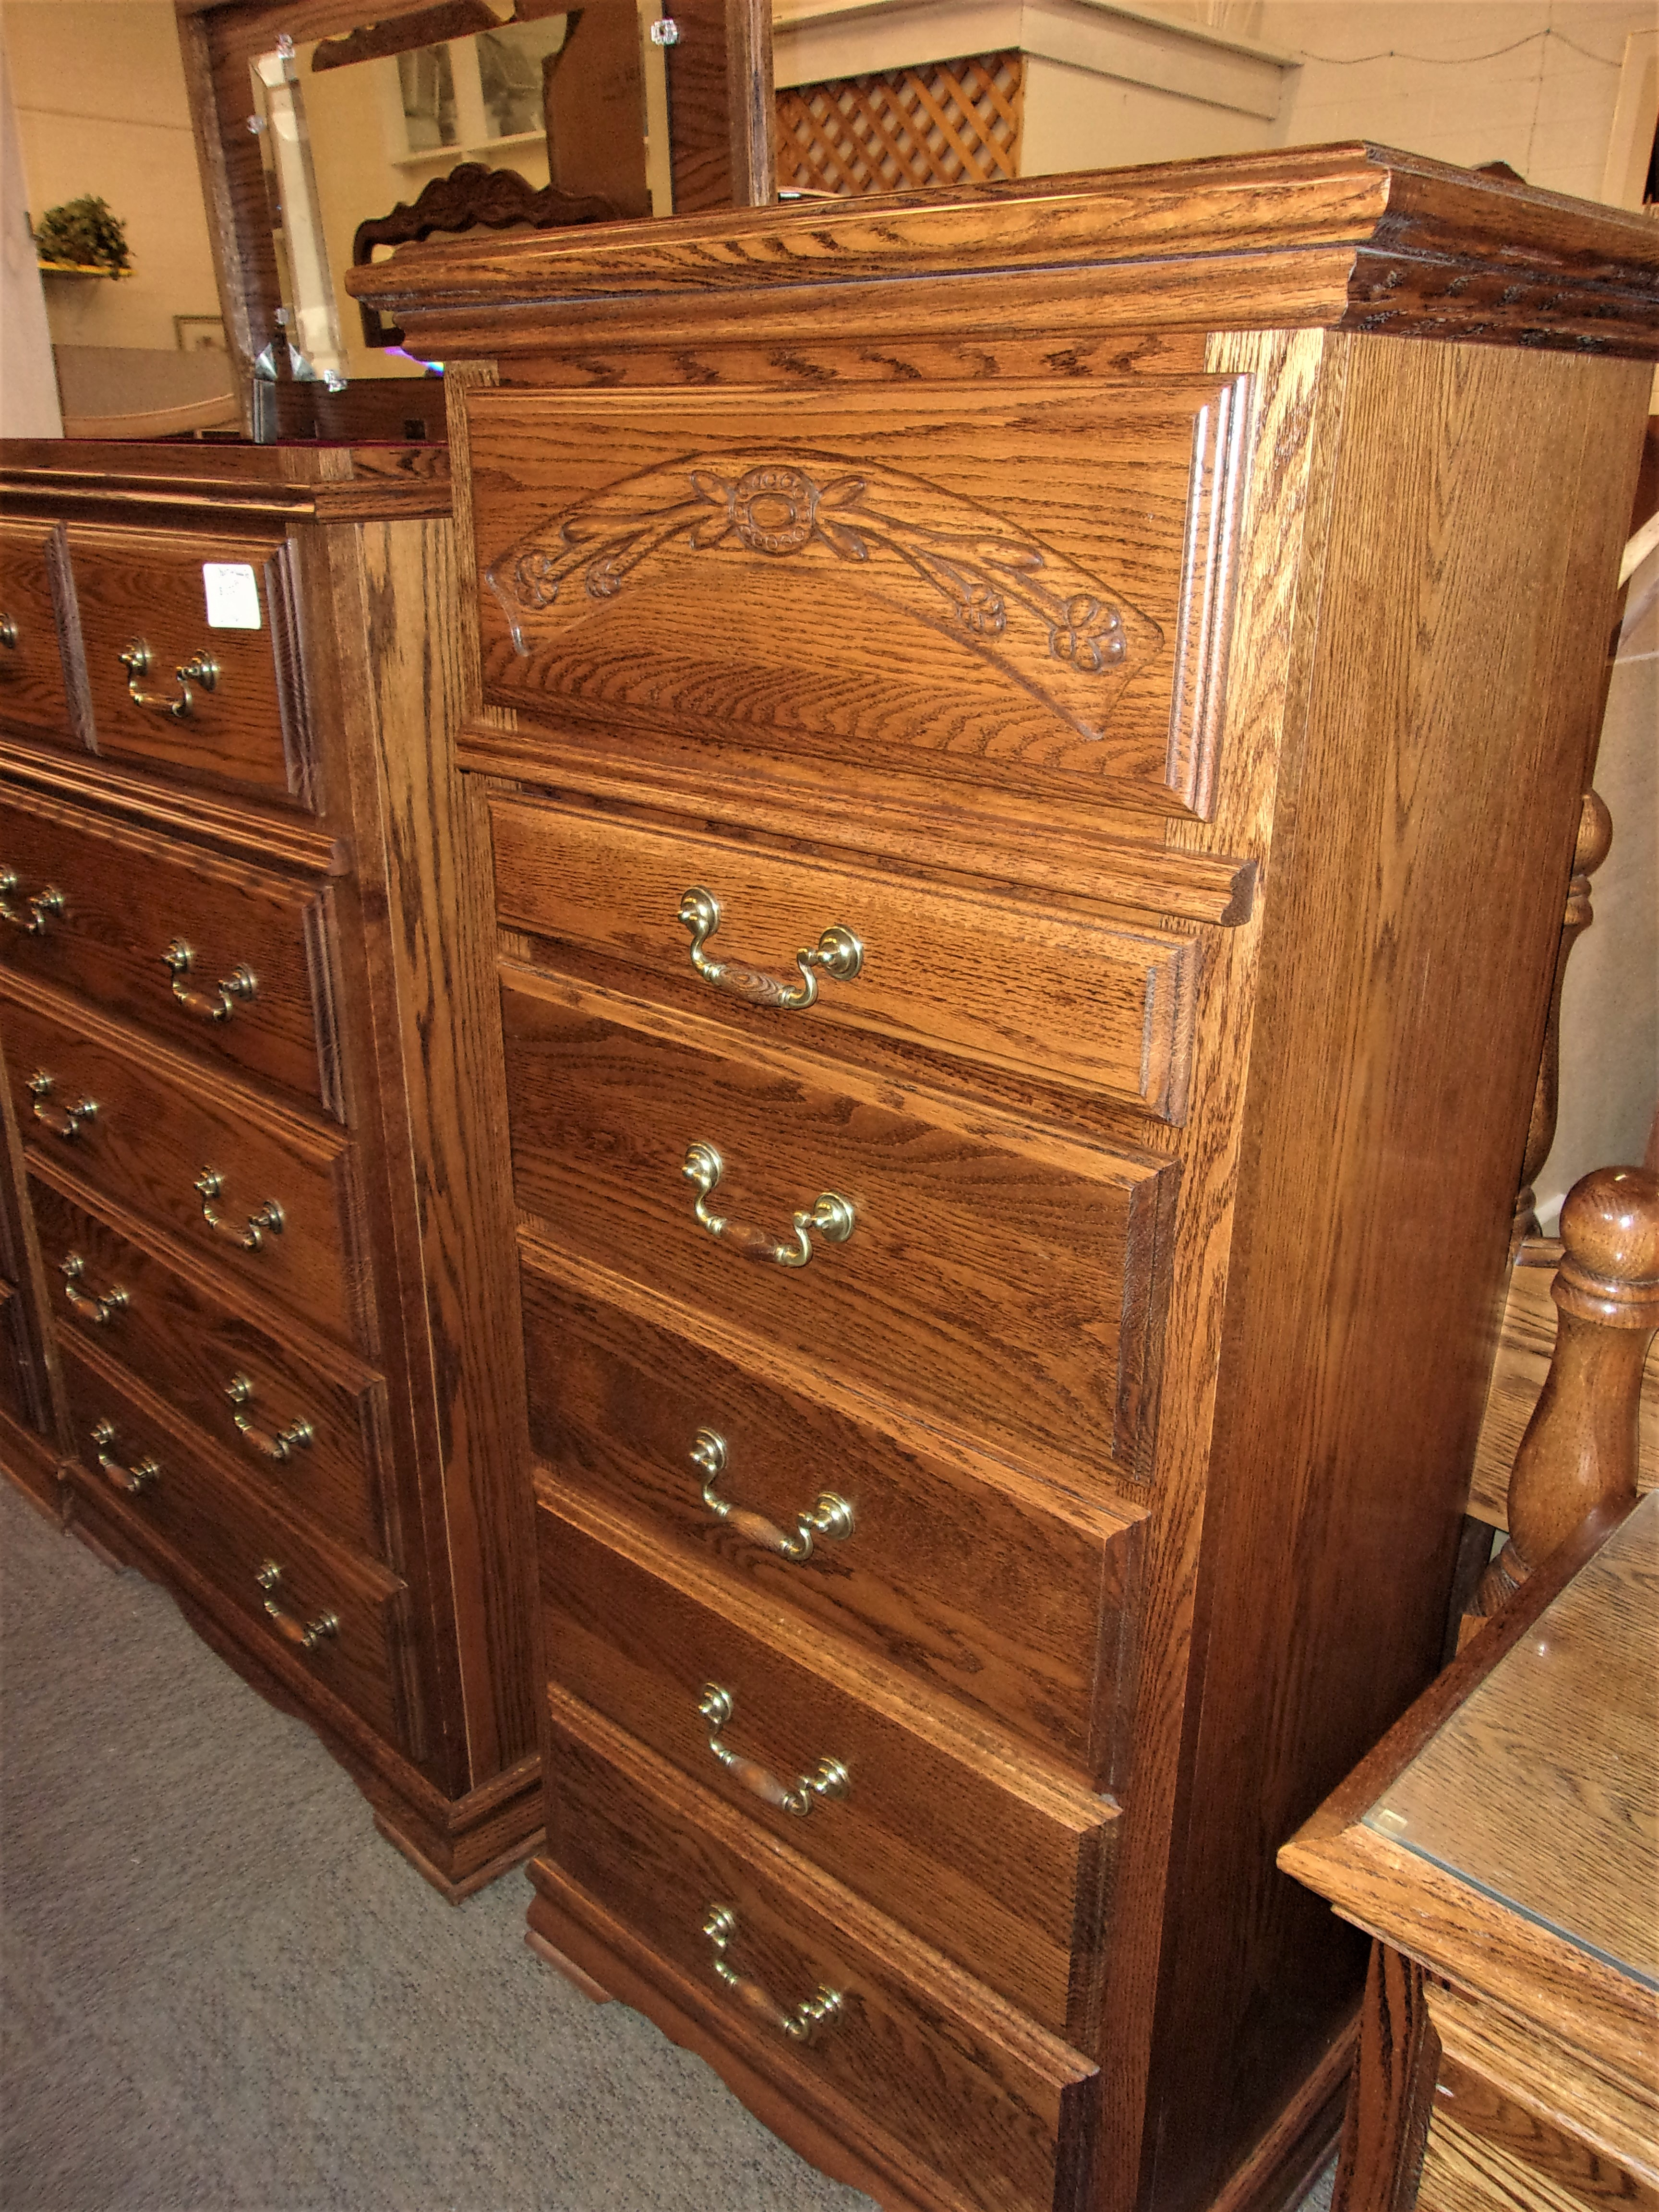 6 Drawer Chest- part of set, sold separately